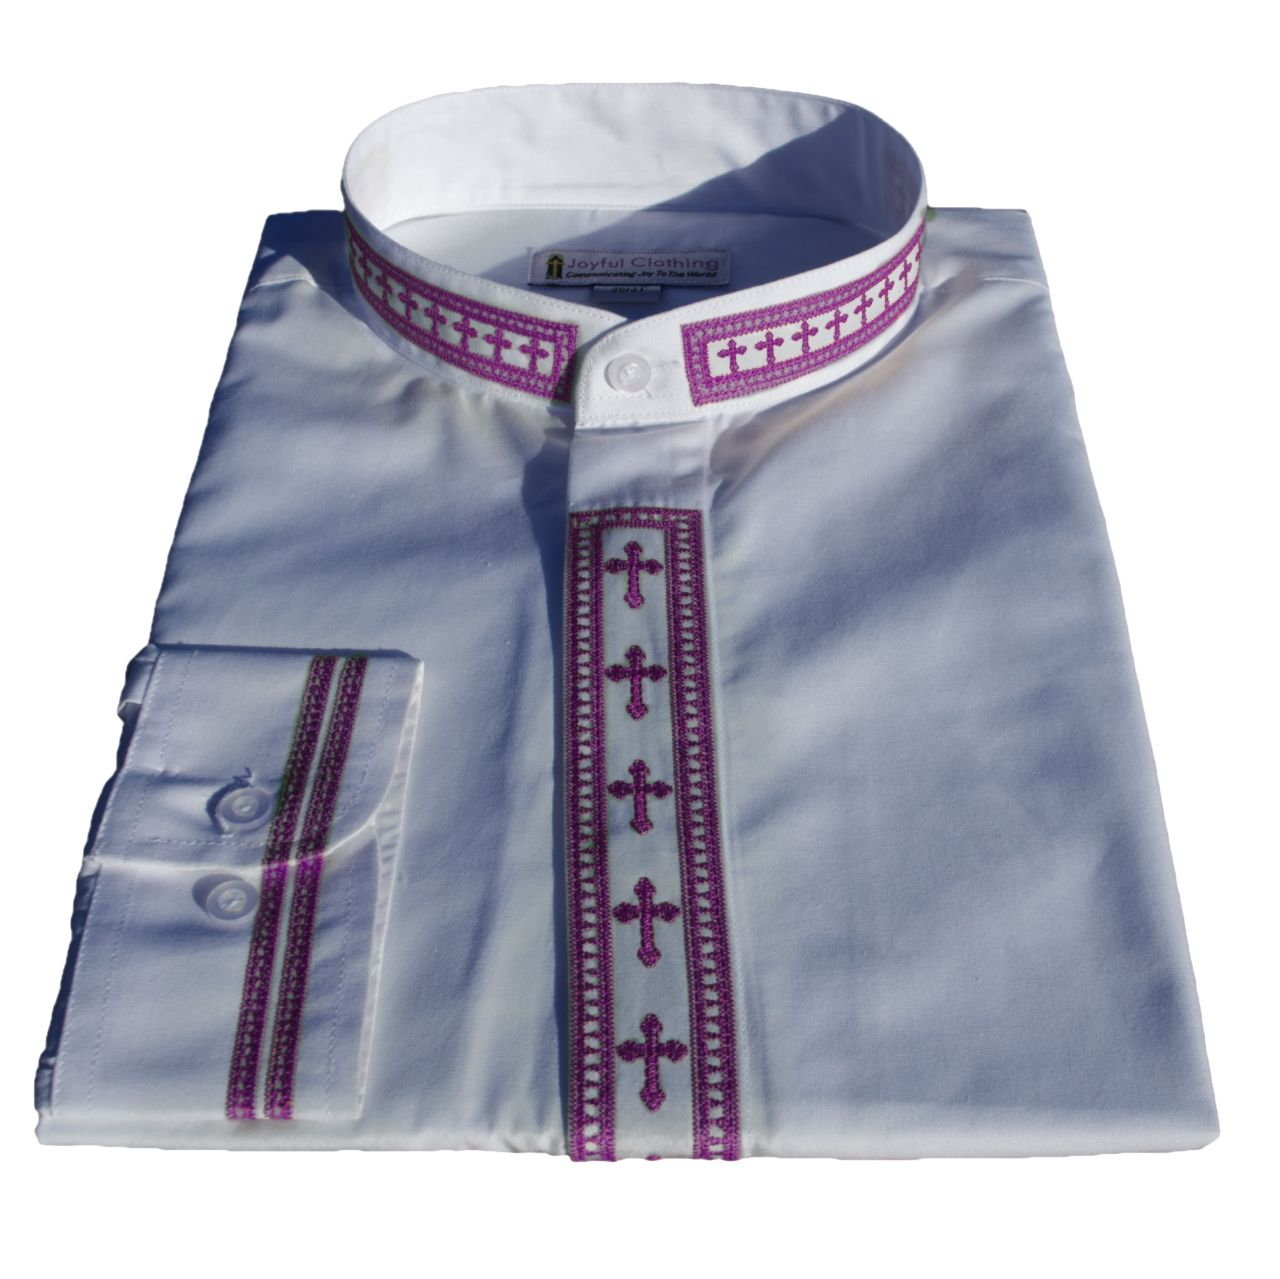 317. Men's Long-Sleeve Clergy Shirt With Fine Embroidery - White/Purple